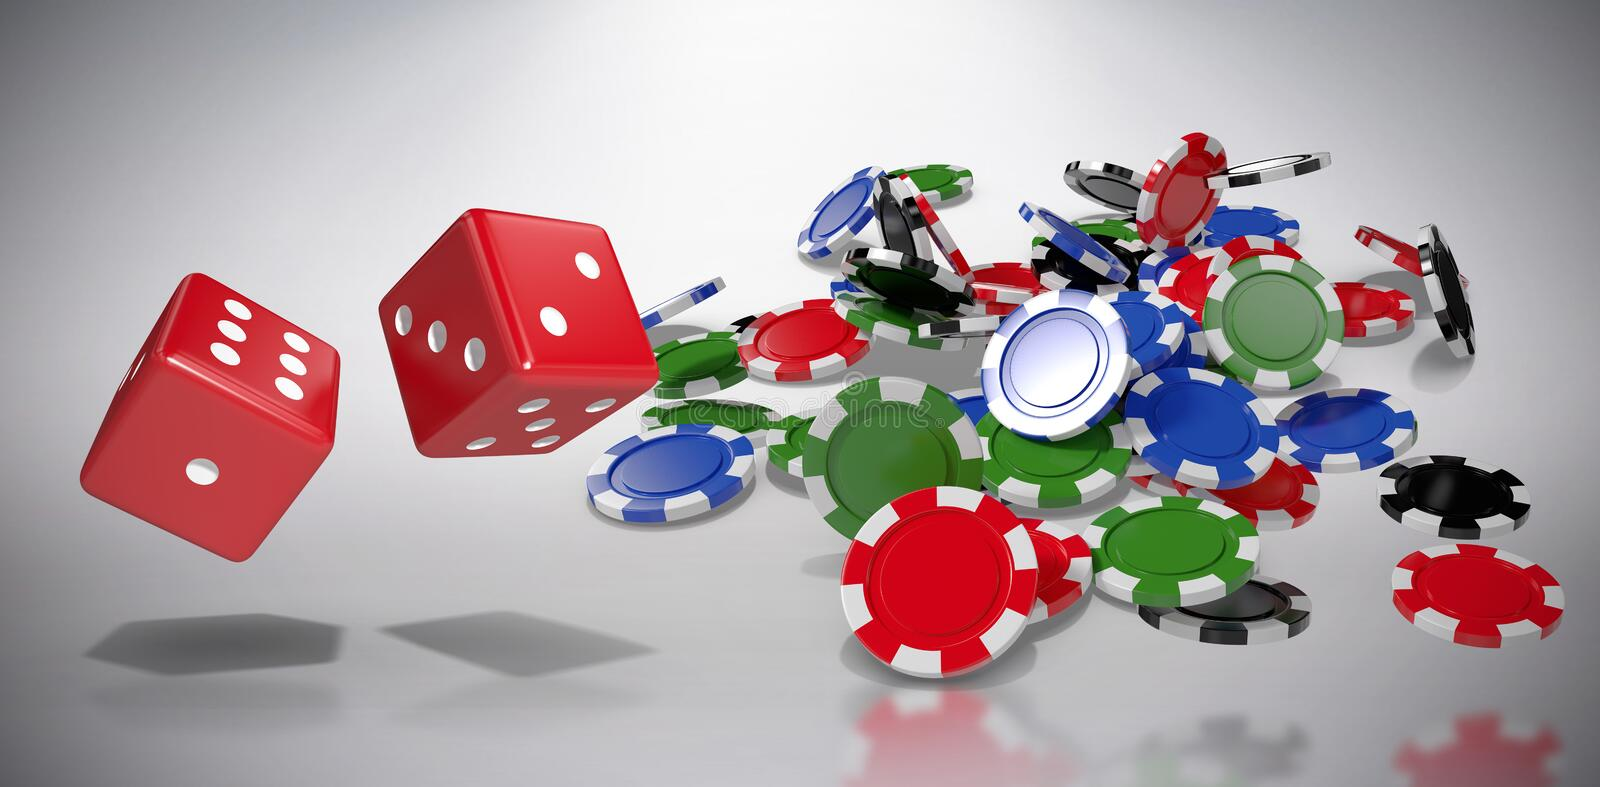 Composite image of composite 3d image of red dice. Composite 3D image of red dice against grey background stock illustration